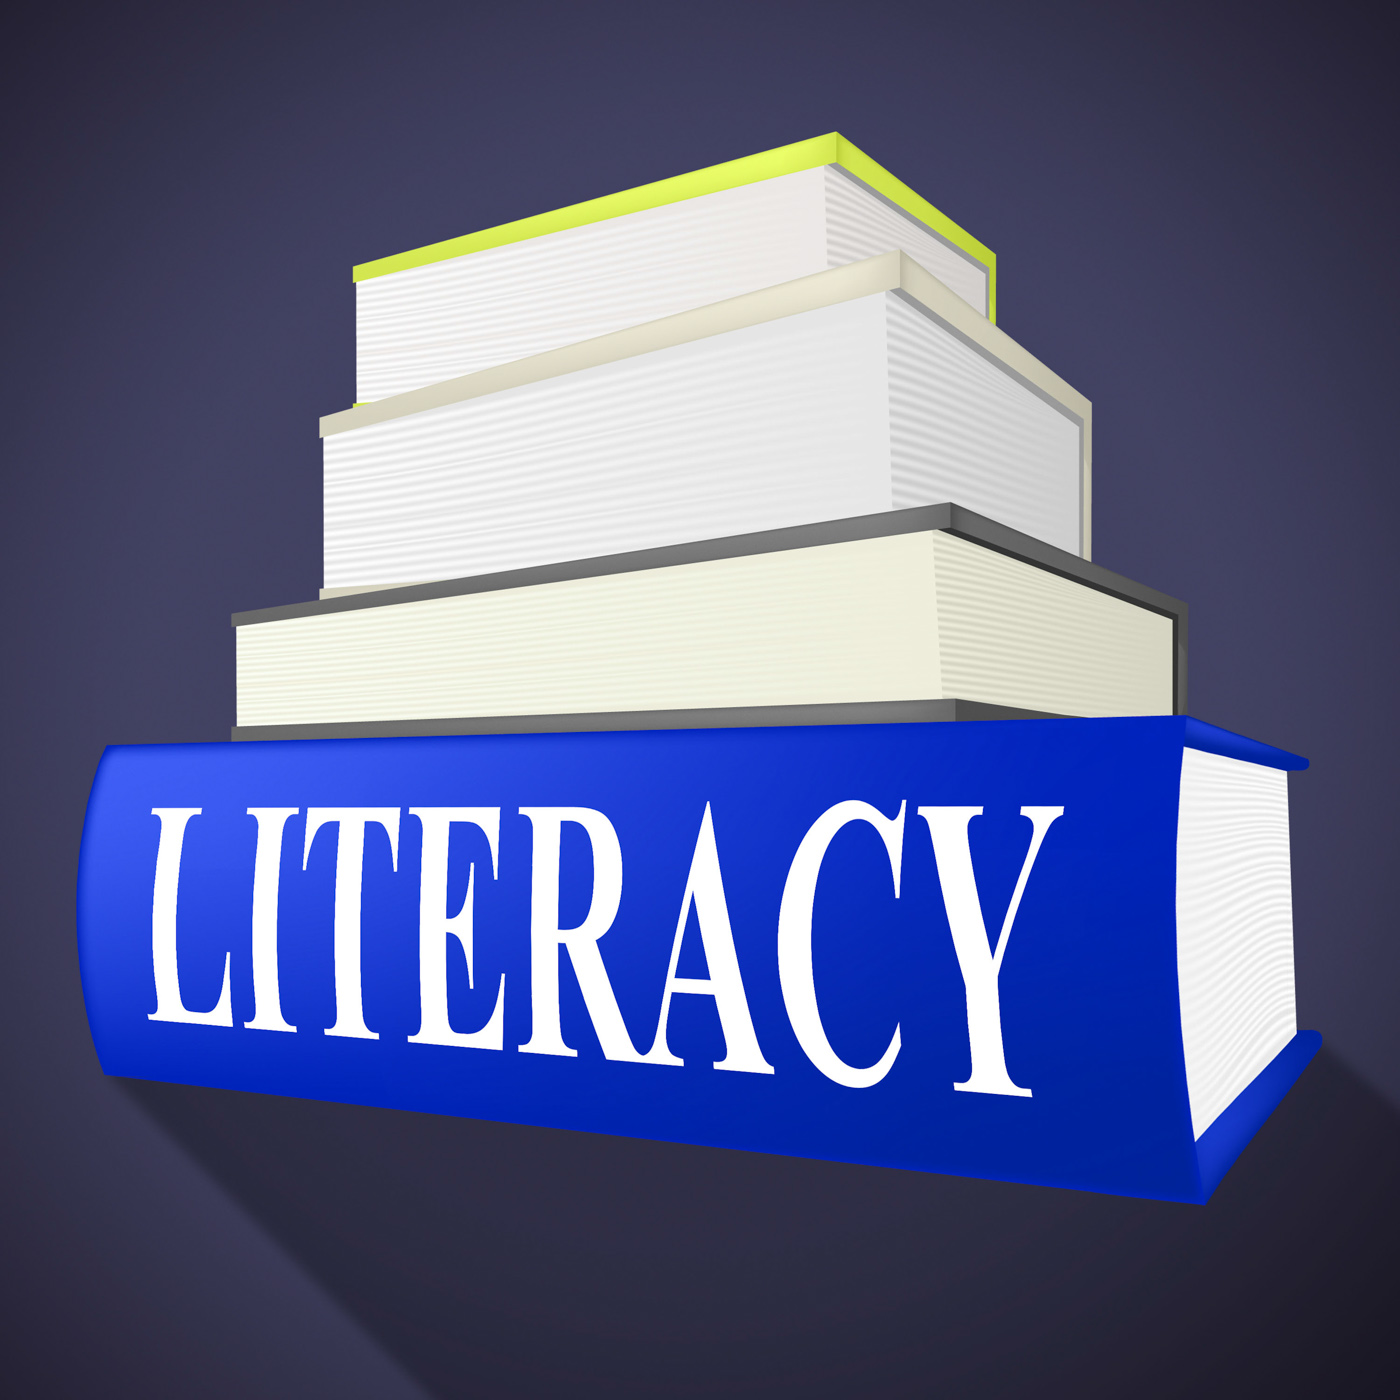 Literacy Book Means Textbook Read And Education, Proficiency, Write, University, Tutoring, HQ Photo